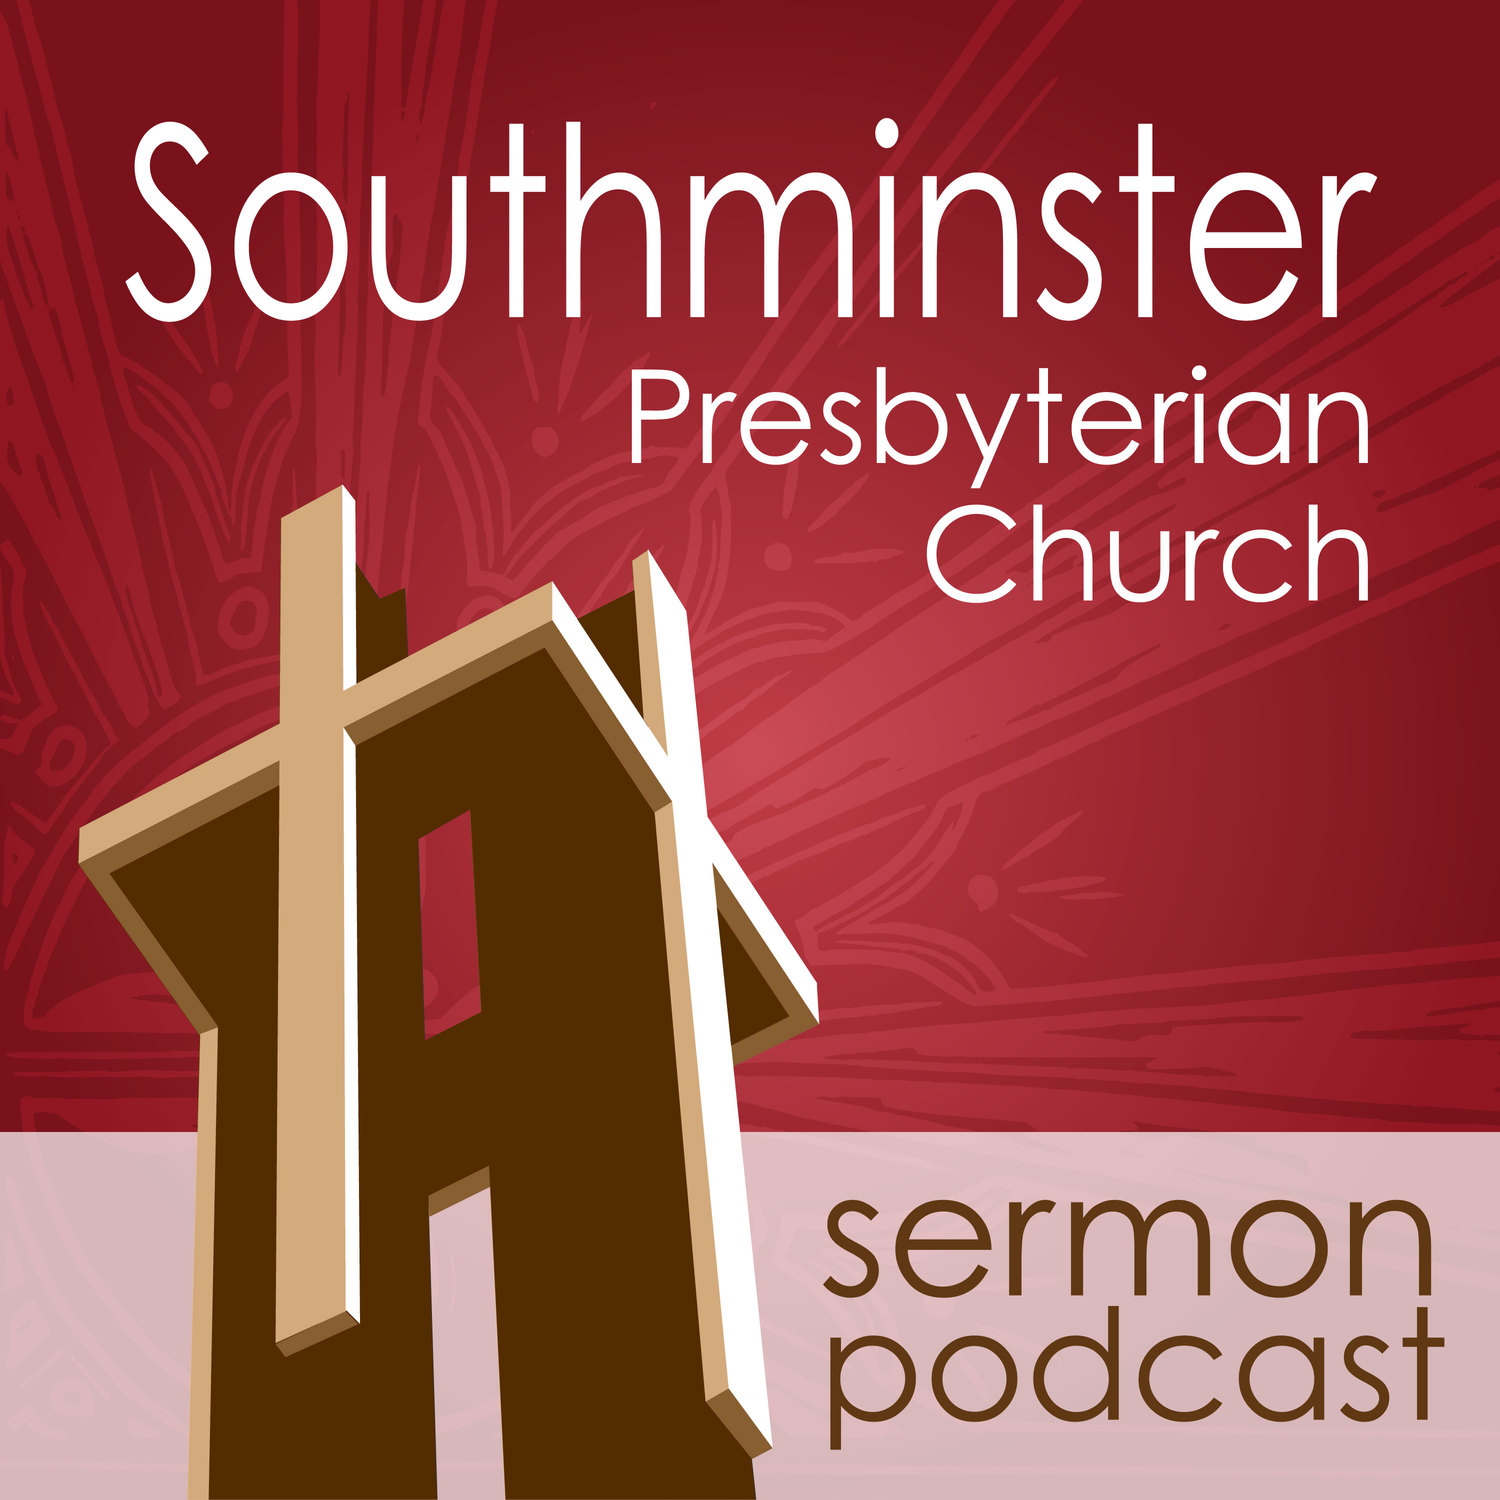 Podcast - Southminster Presbyterian Church